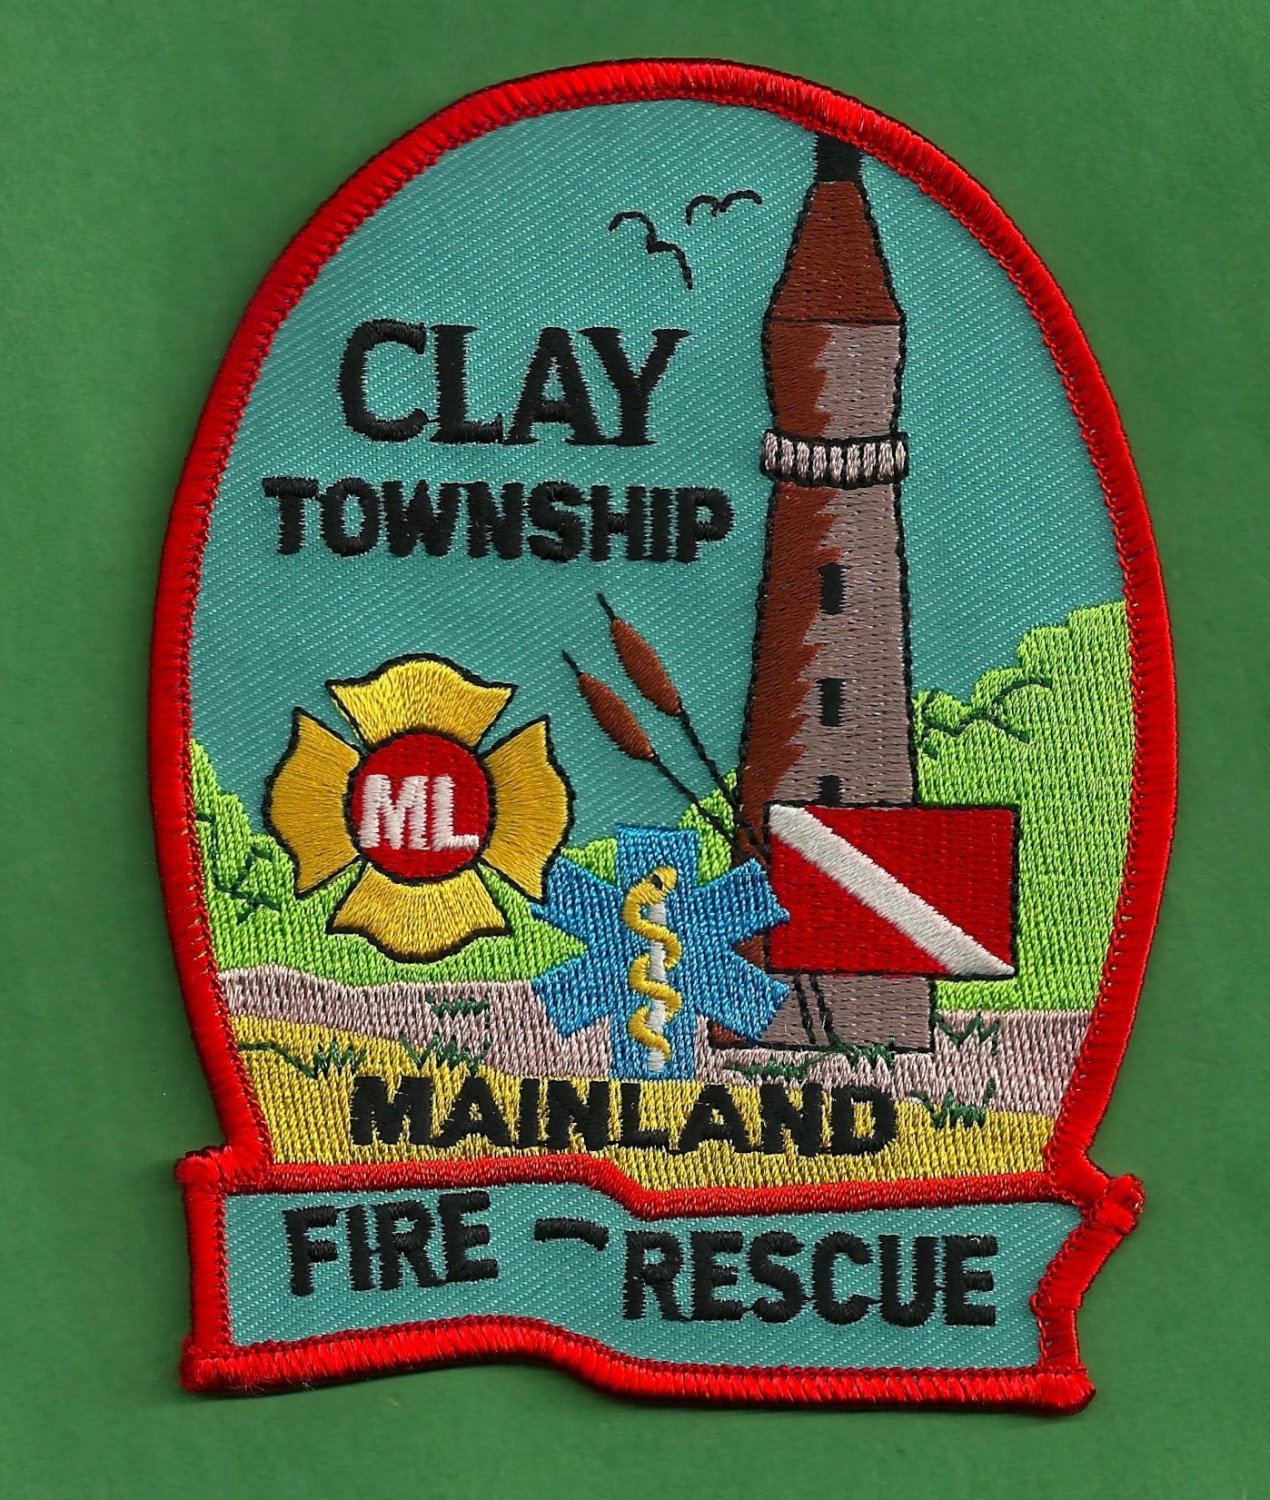 Clay township michigan fire rescue patch for Jewelry stores in gwinnett county ga